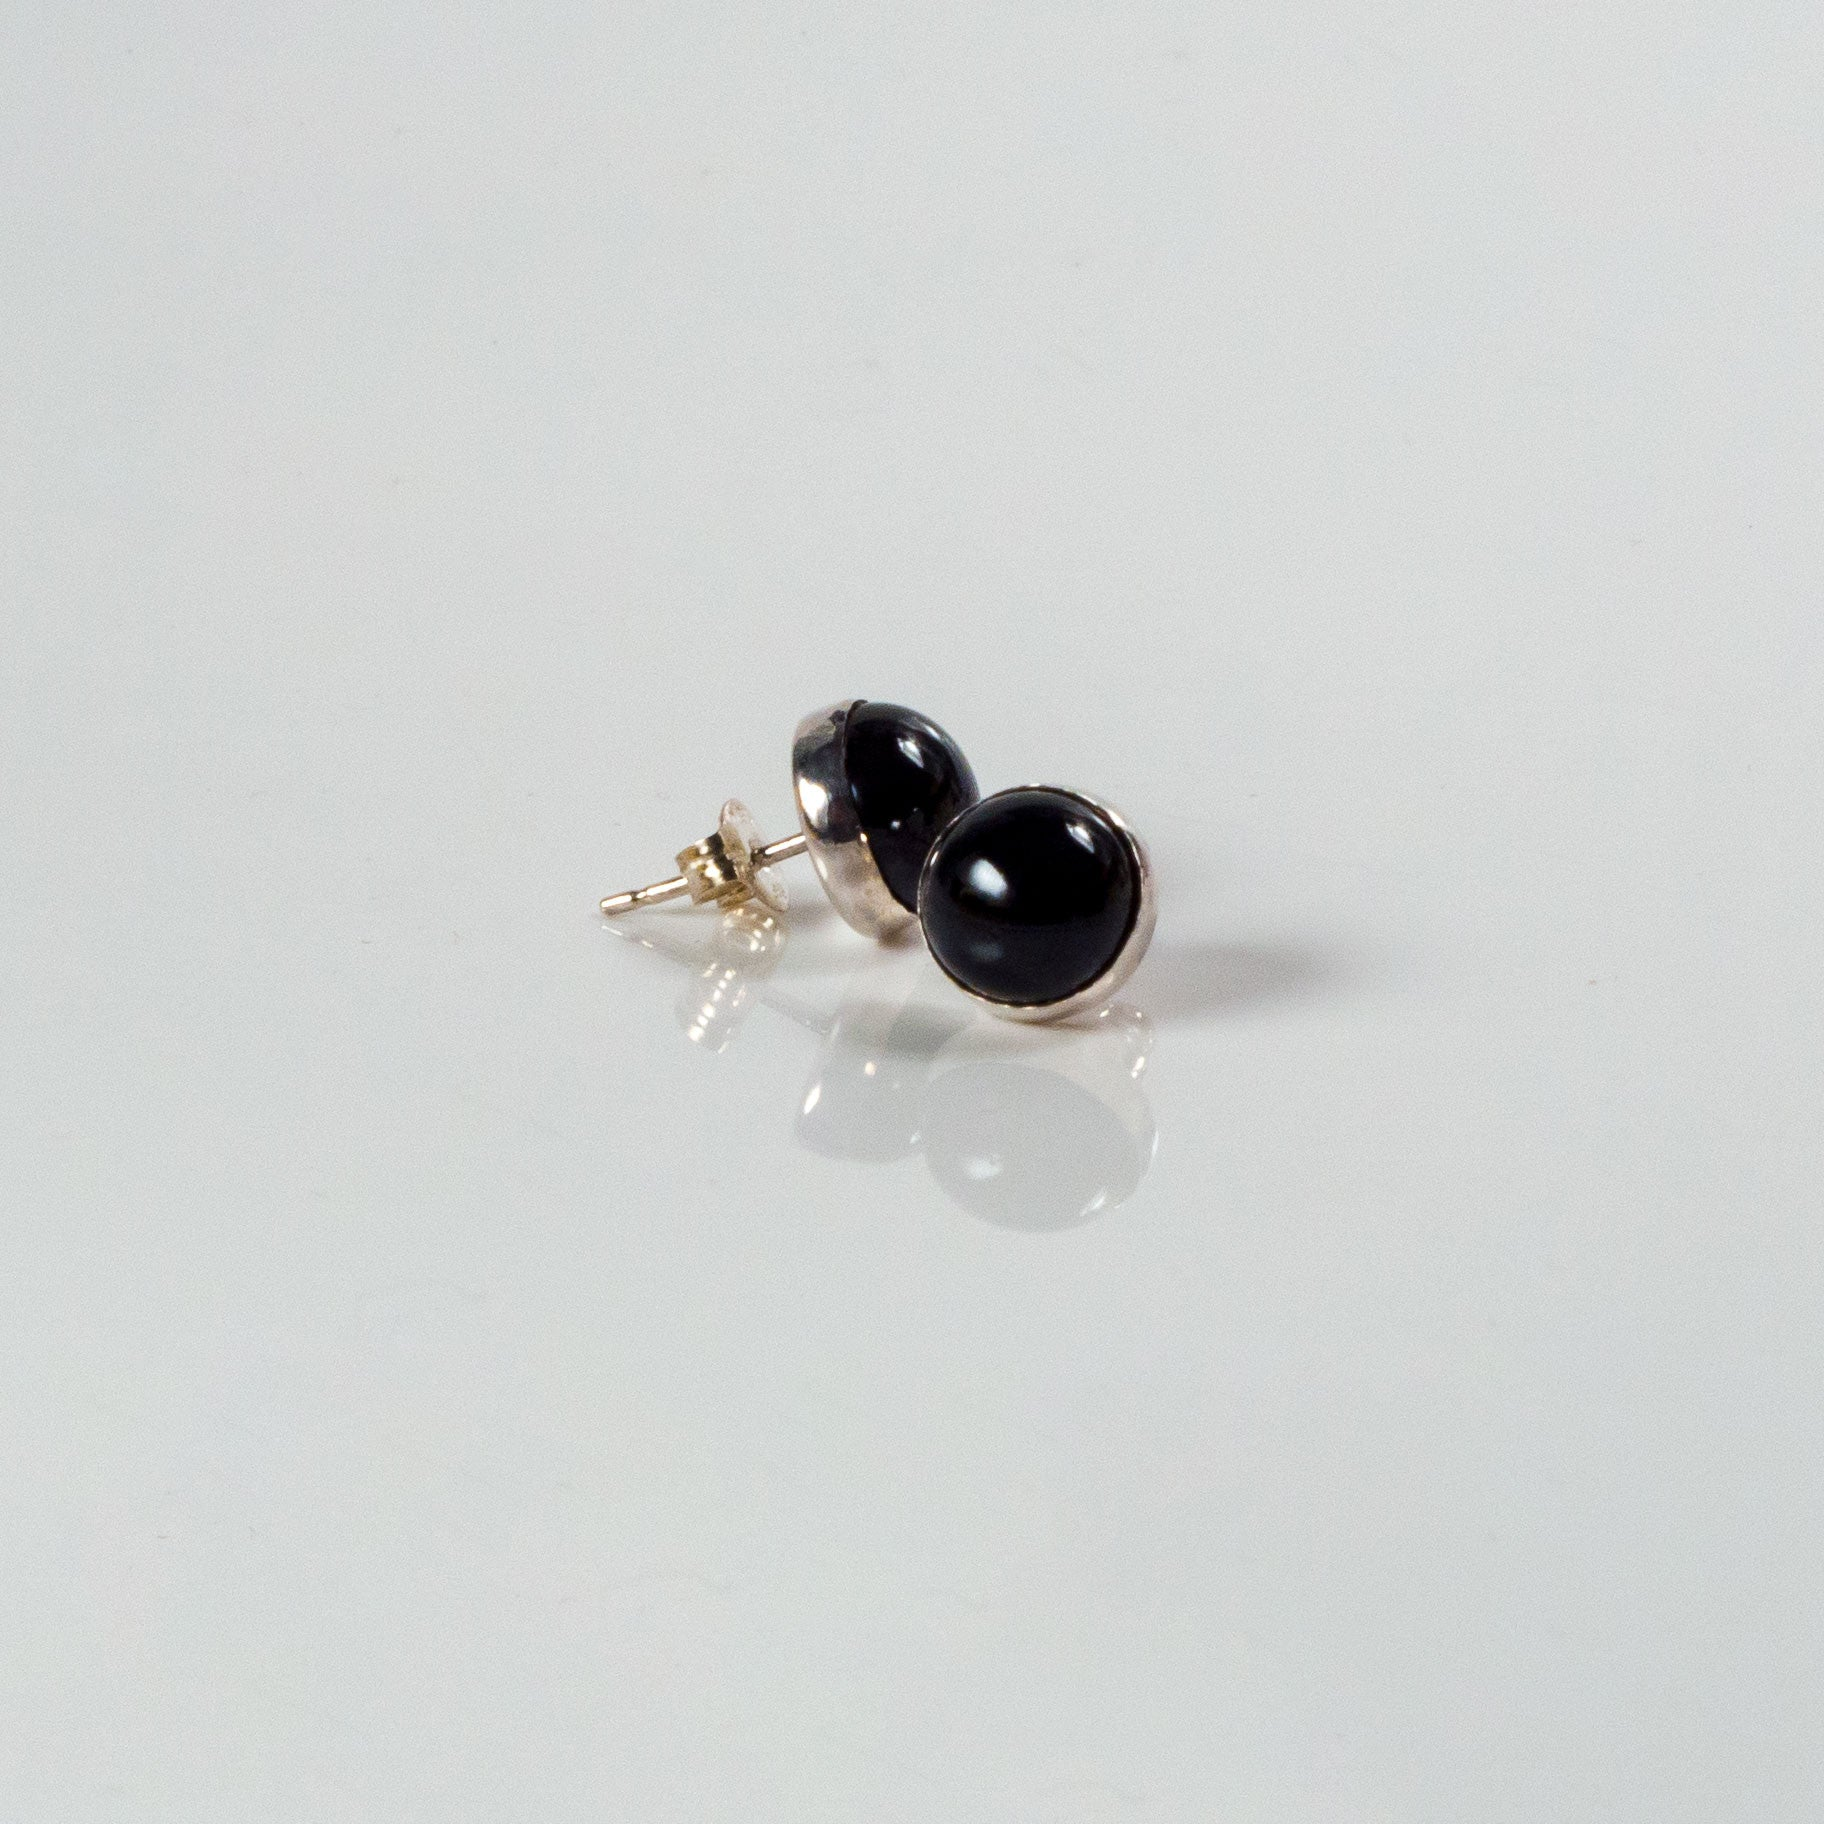 Home > Jewelry Collection > 6mm Black Pearl Stud Earrings With A Silver Edge